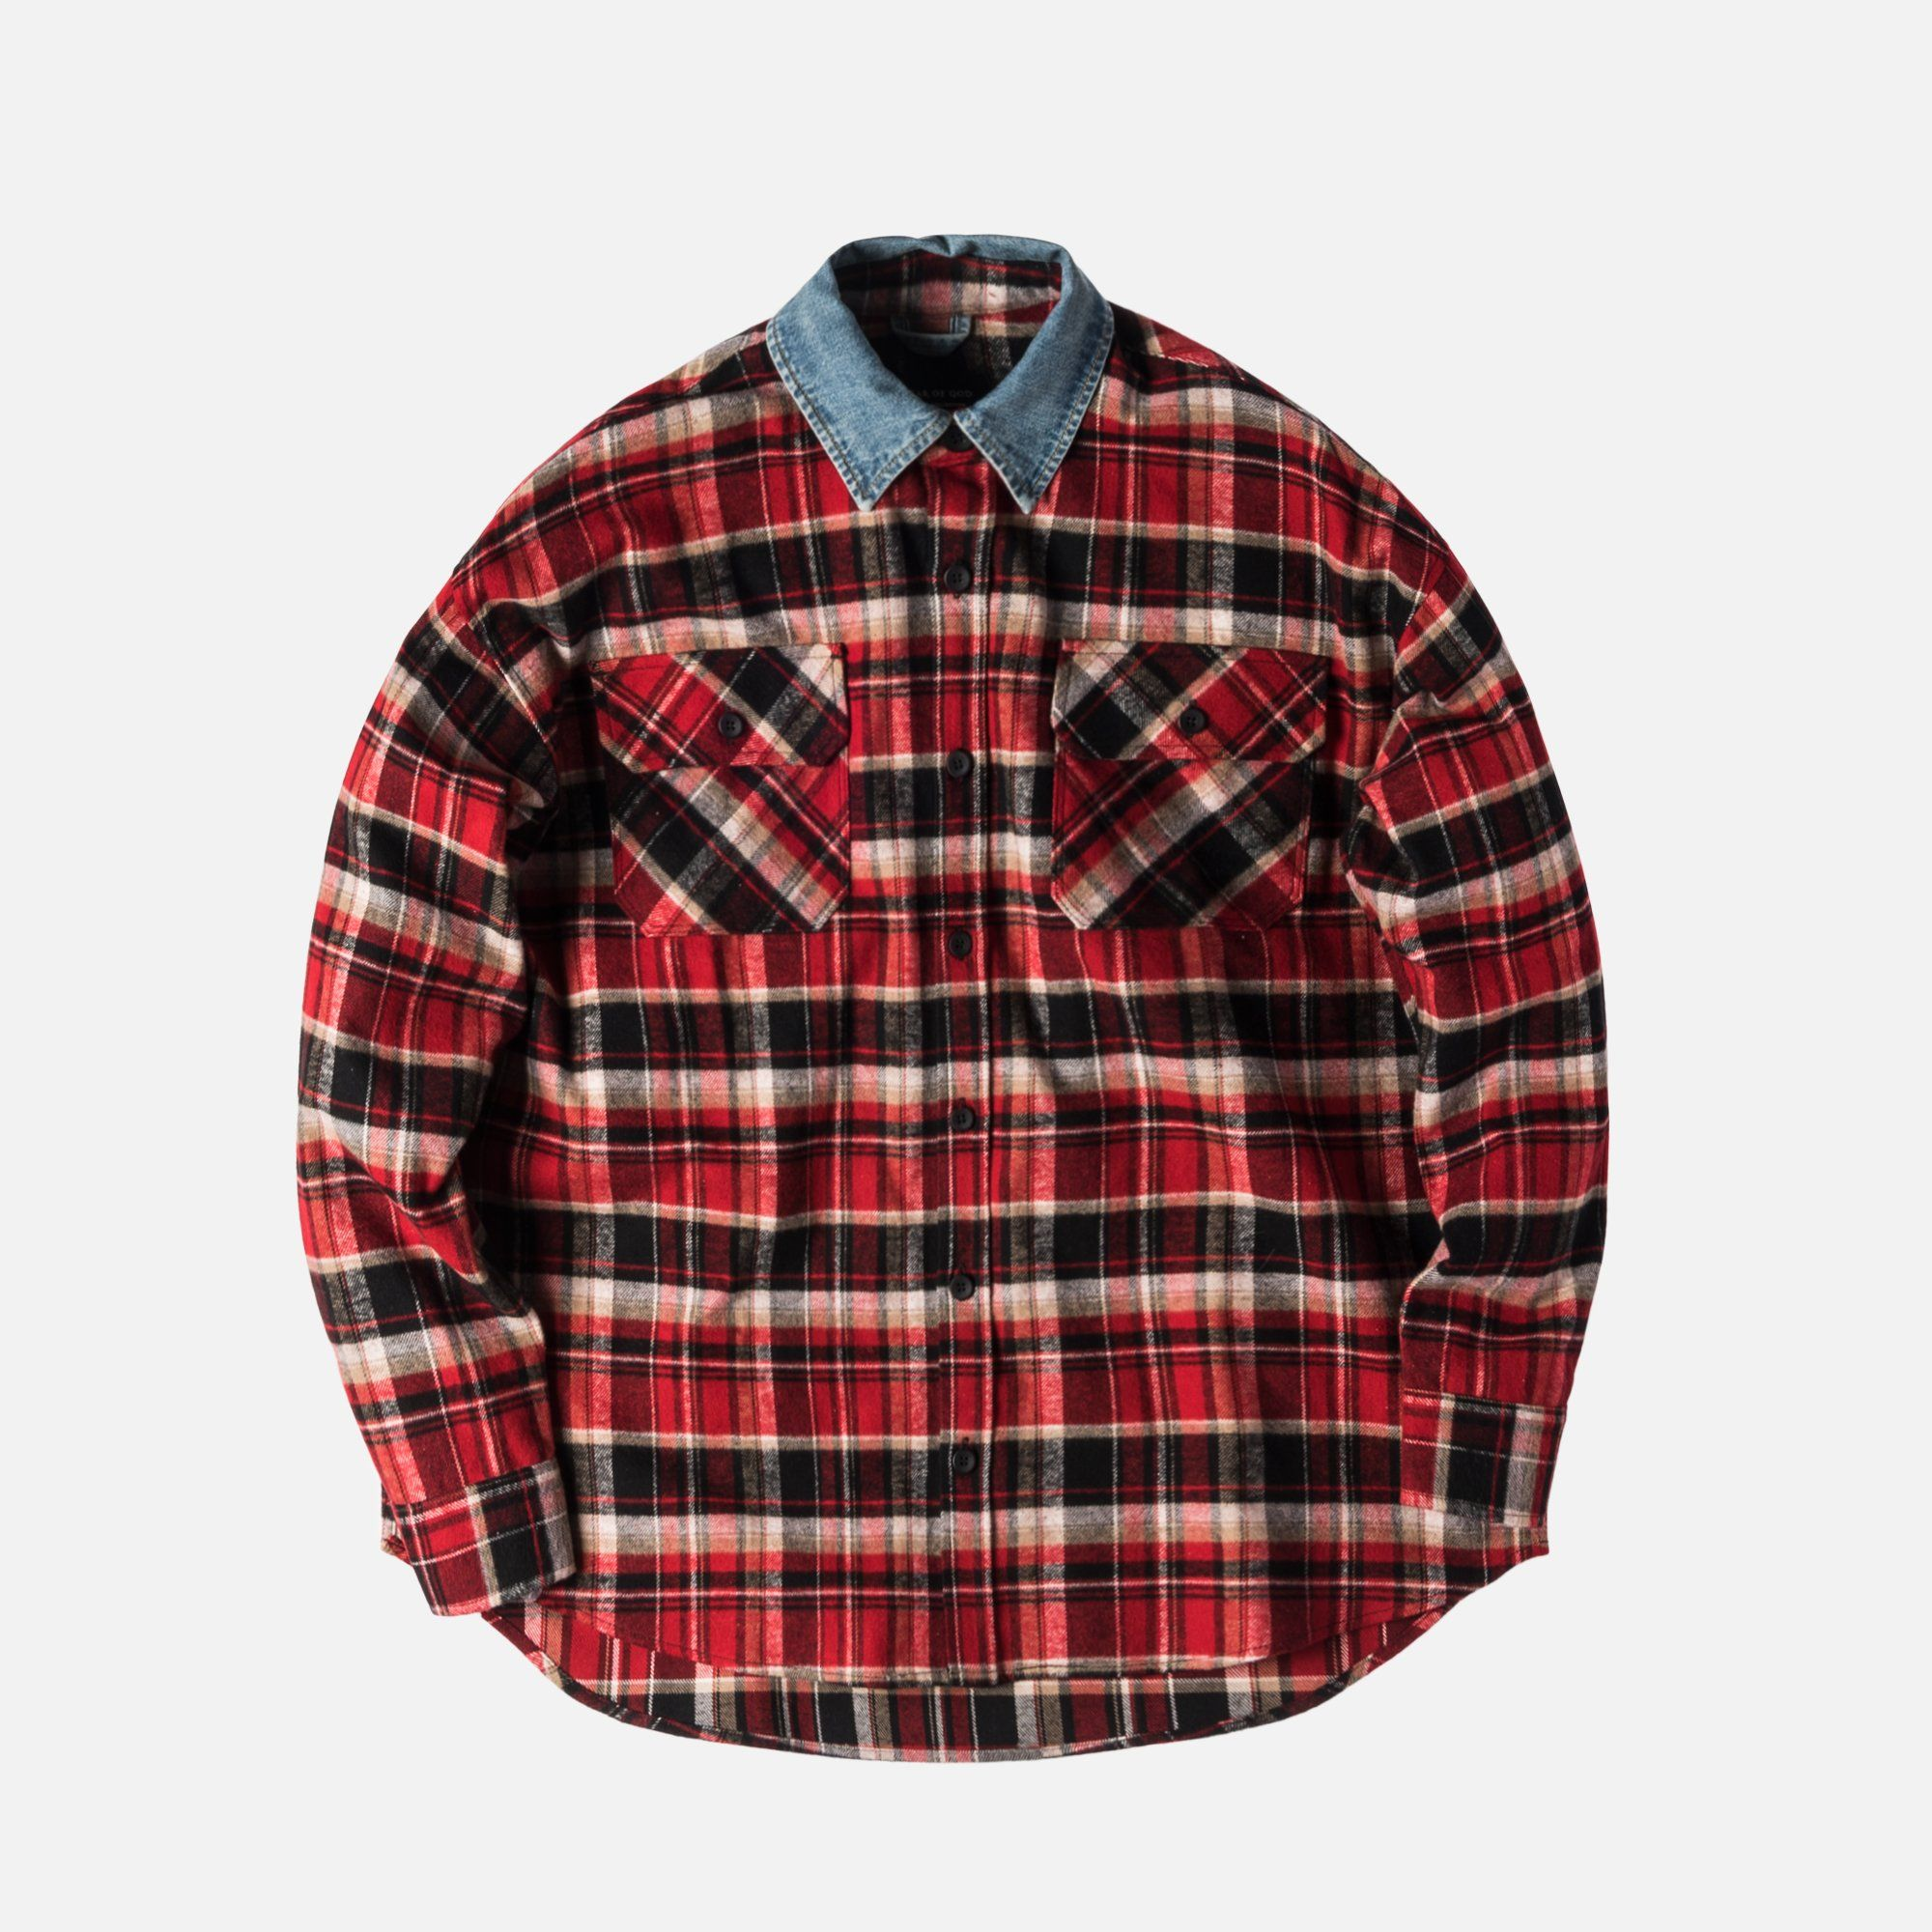 196ed6c084 Fear of God 5th Collection Denim Collared Flannel - Red   Plaid ...